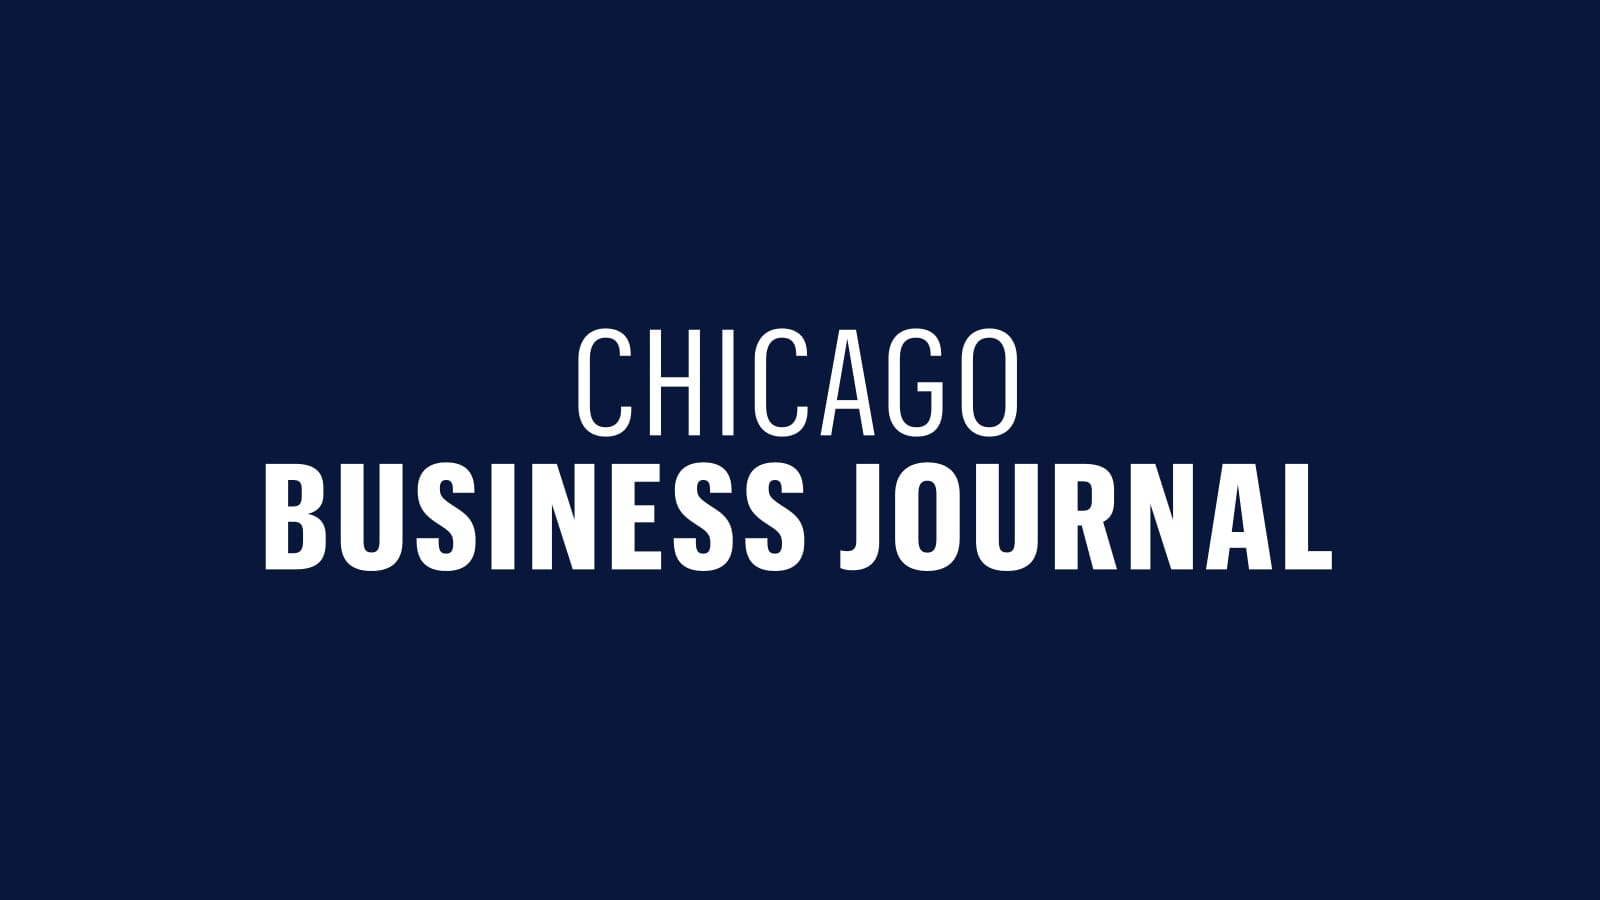 chicago-business-journal-logo